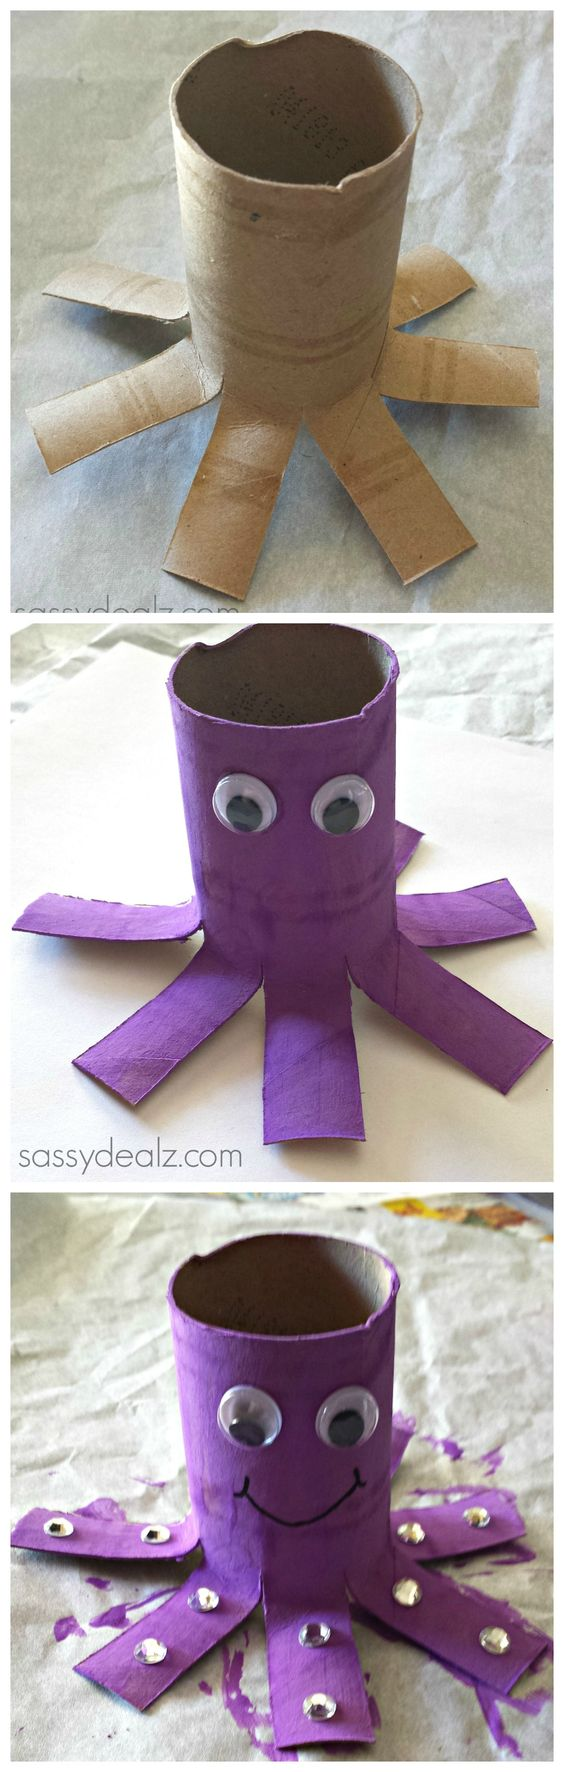 Octopus Toilet Paper Roll Craft For Kids #Recycled toilet paper tube art project #Ocean #Purple   CraftyMorning.com